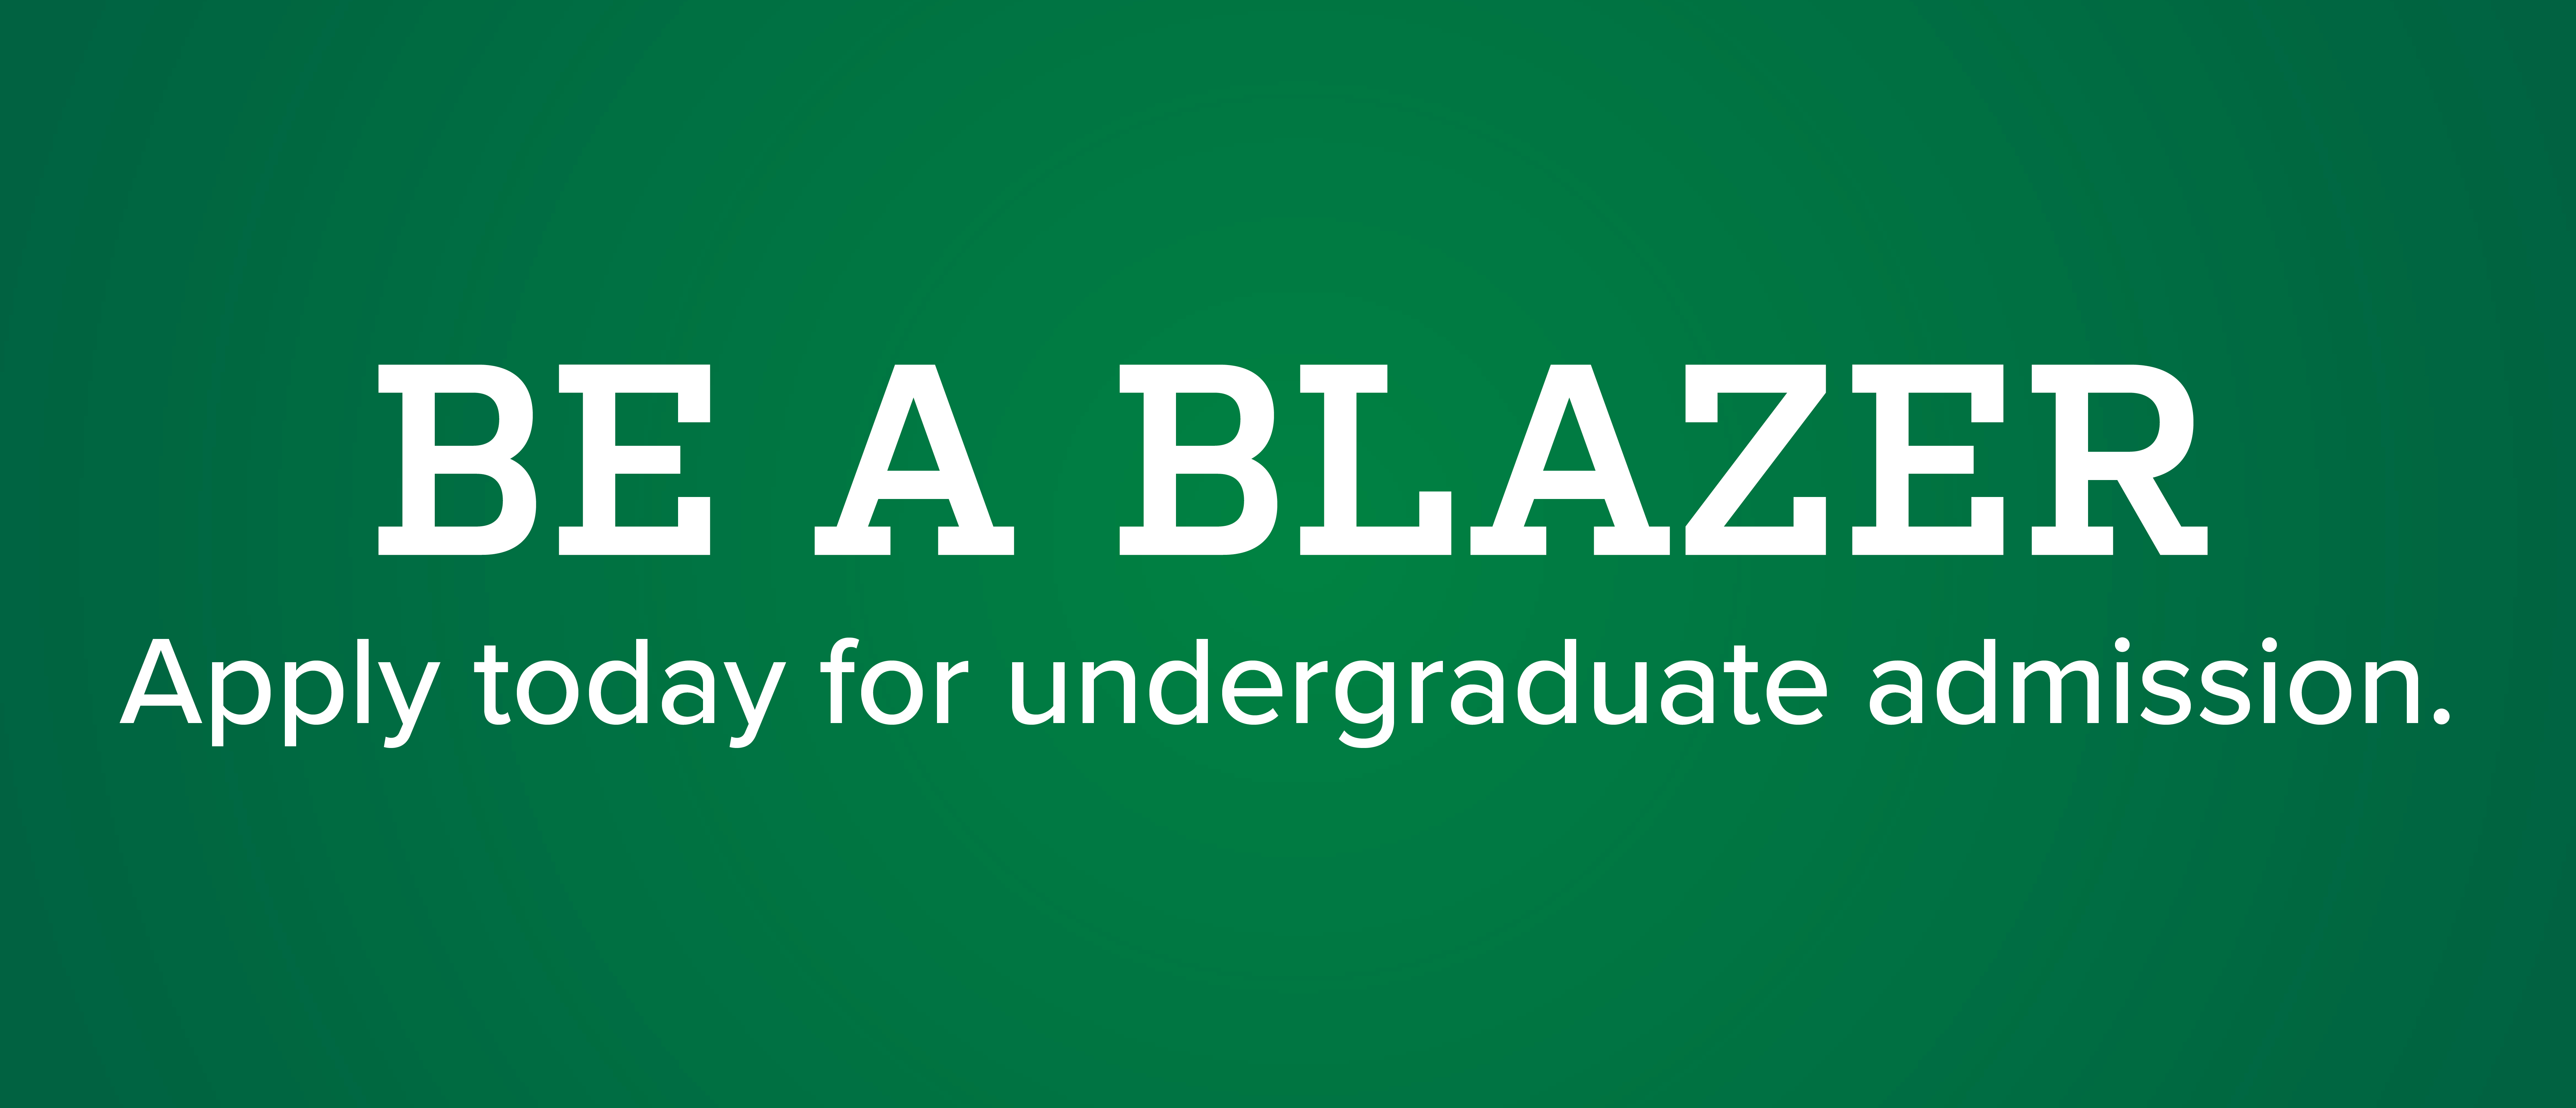 Be a Blazer: Apply today for UAB undergraduate admission